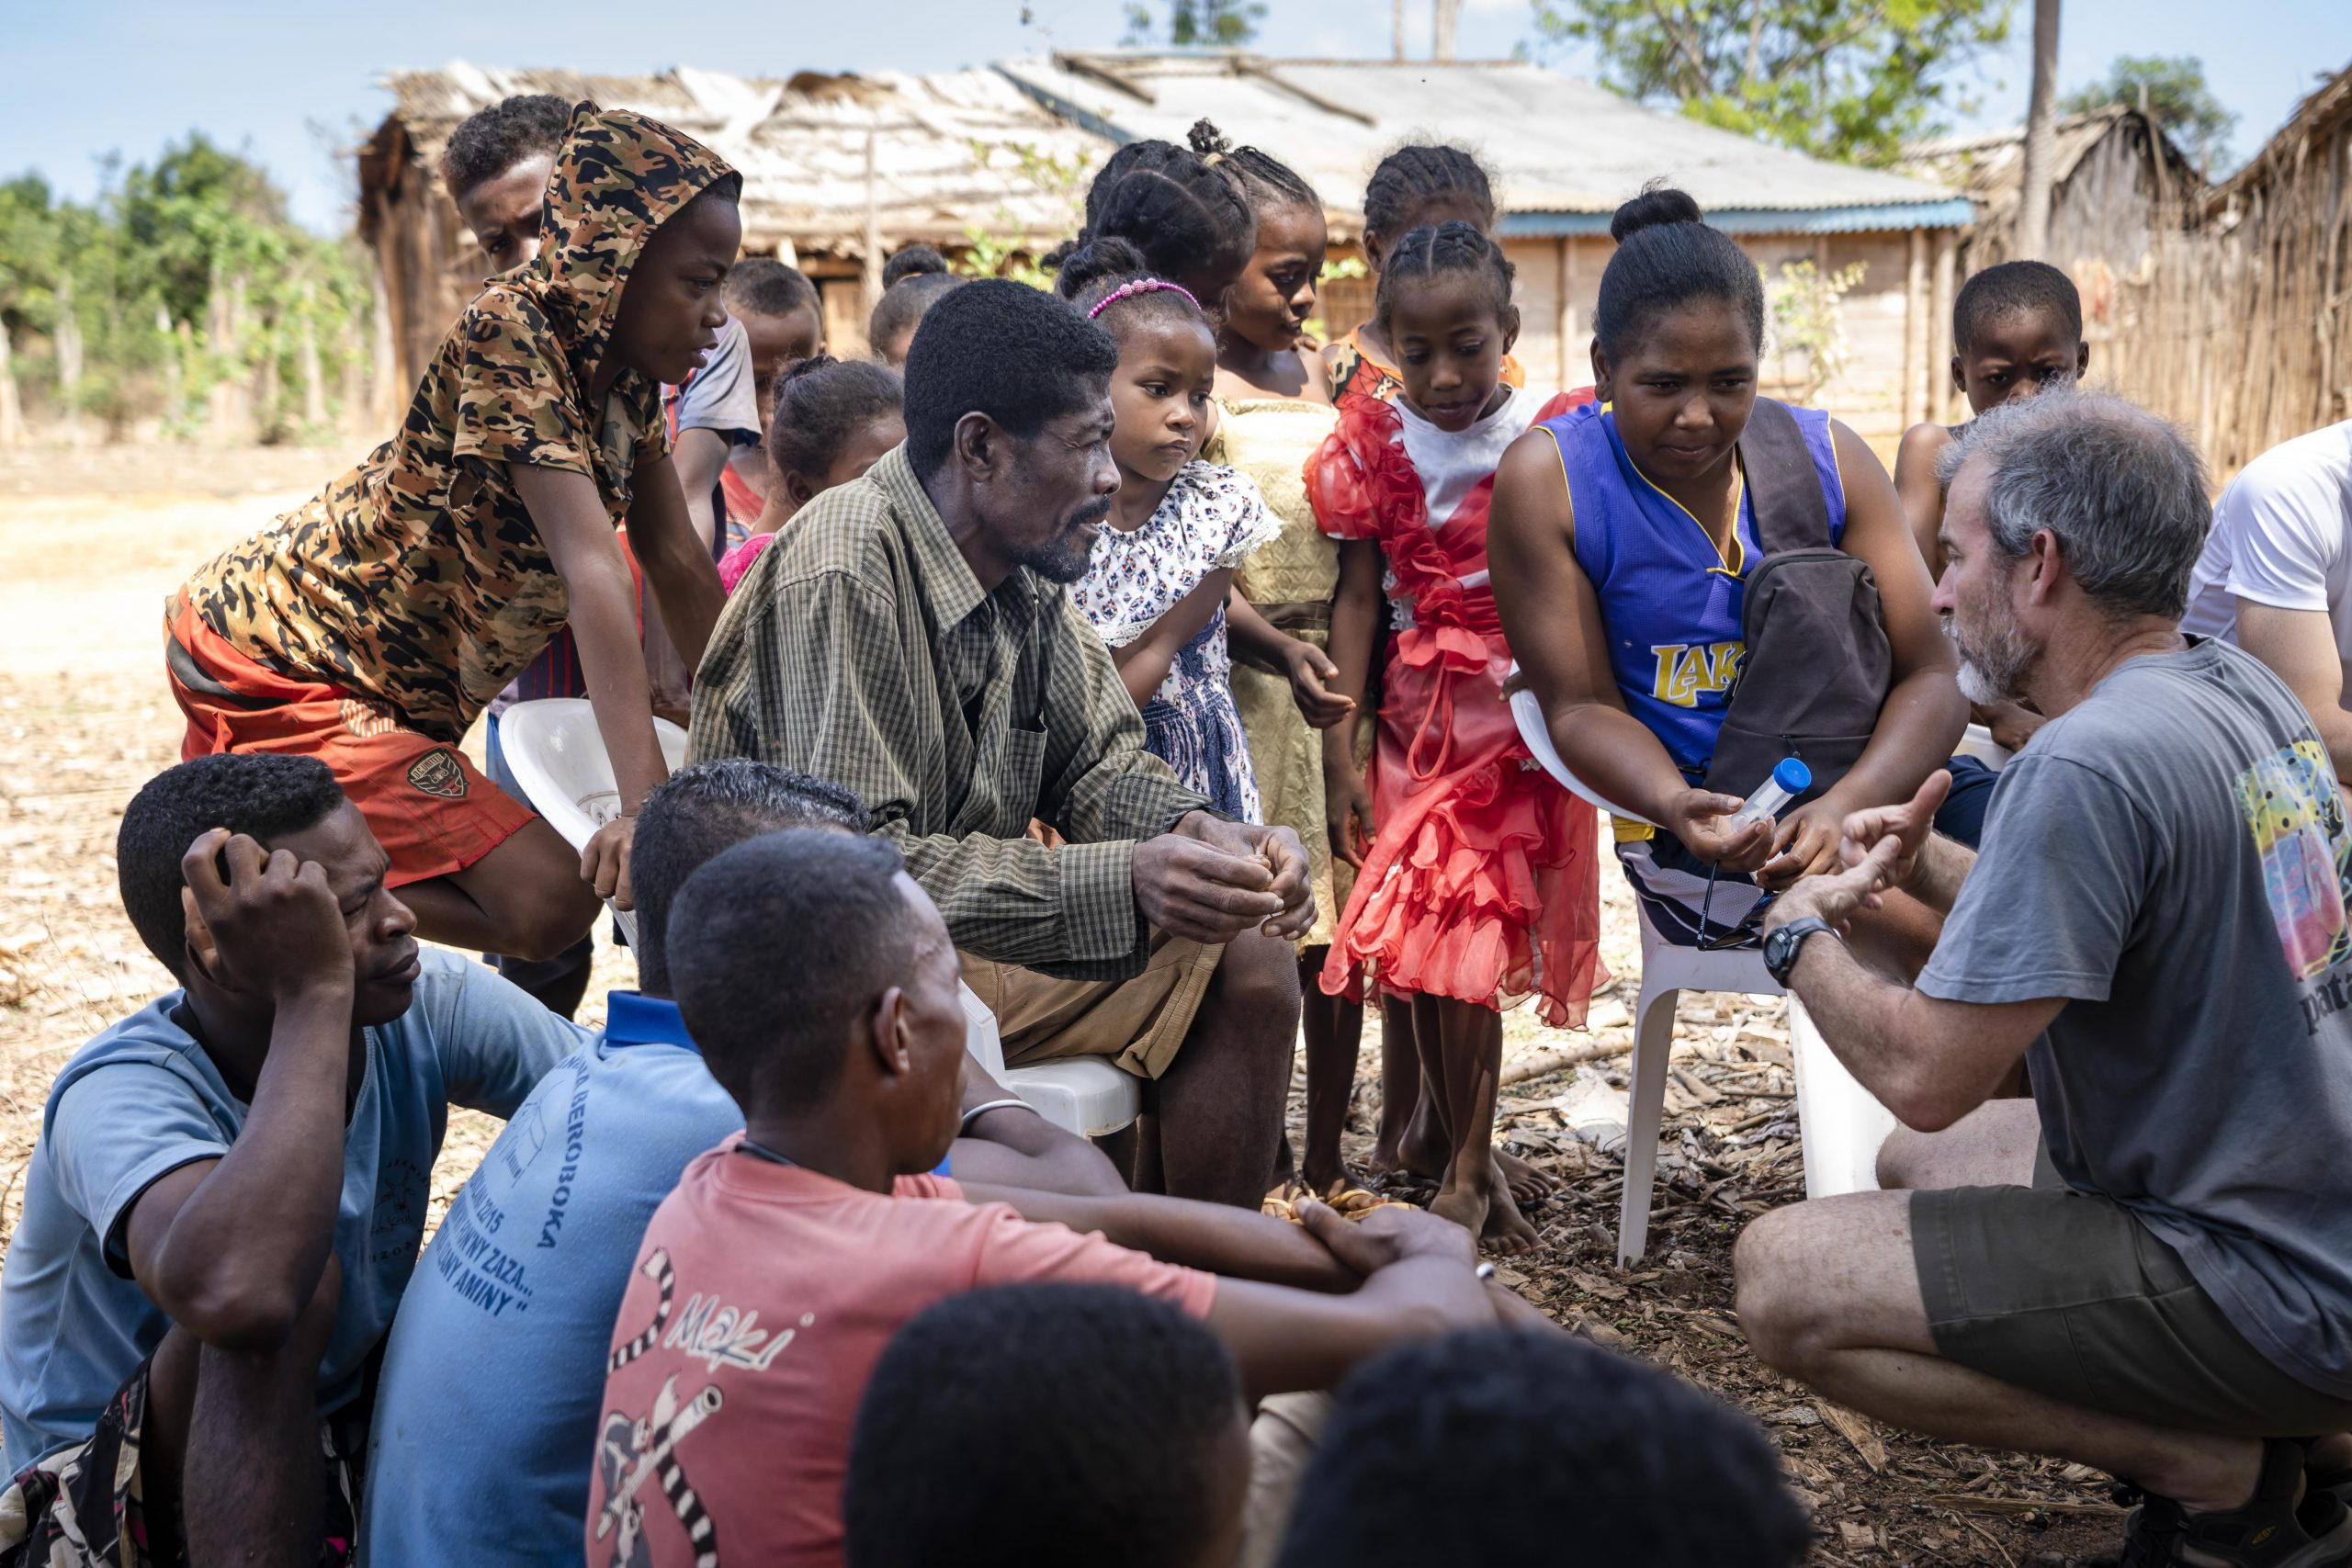 Brian Fisher describes his edible-insect project to residents of Lambokely, a village within the Menabe Antimena Protected Area. Small, village-run cricket farms could help disincentivize unsustainable hunting practices.